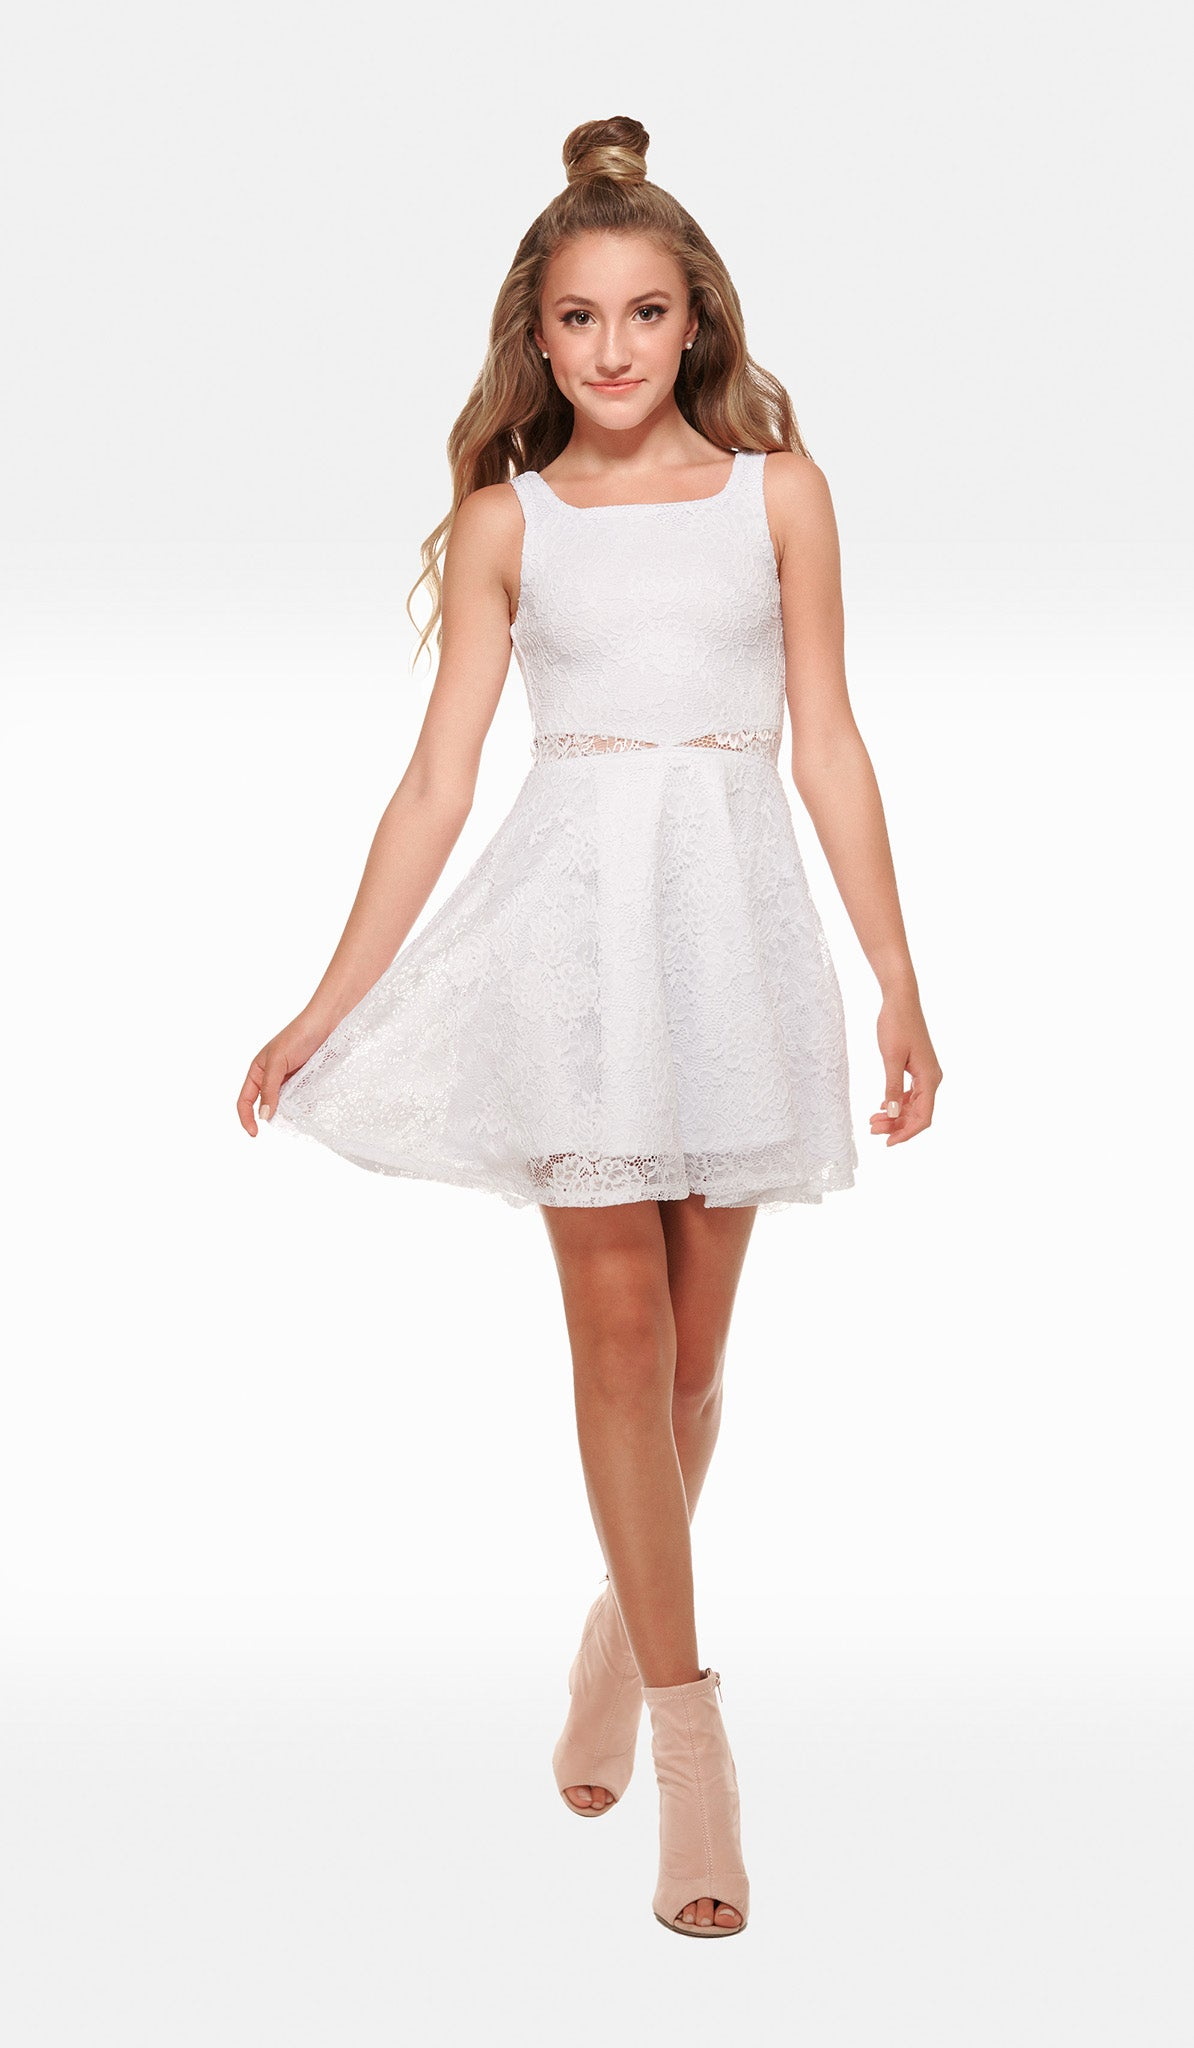 The Sally Miller Rene Dress - White stretch crochet lace fit and flare dress with illusion waist